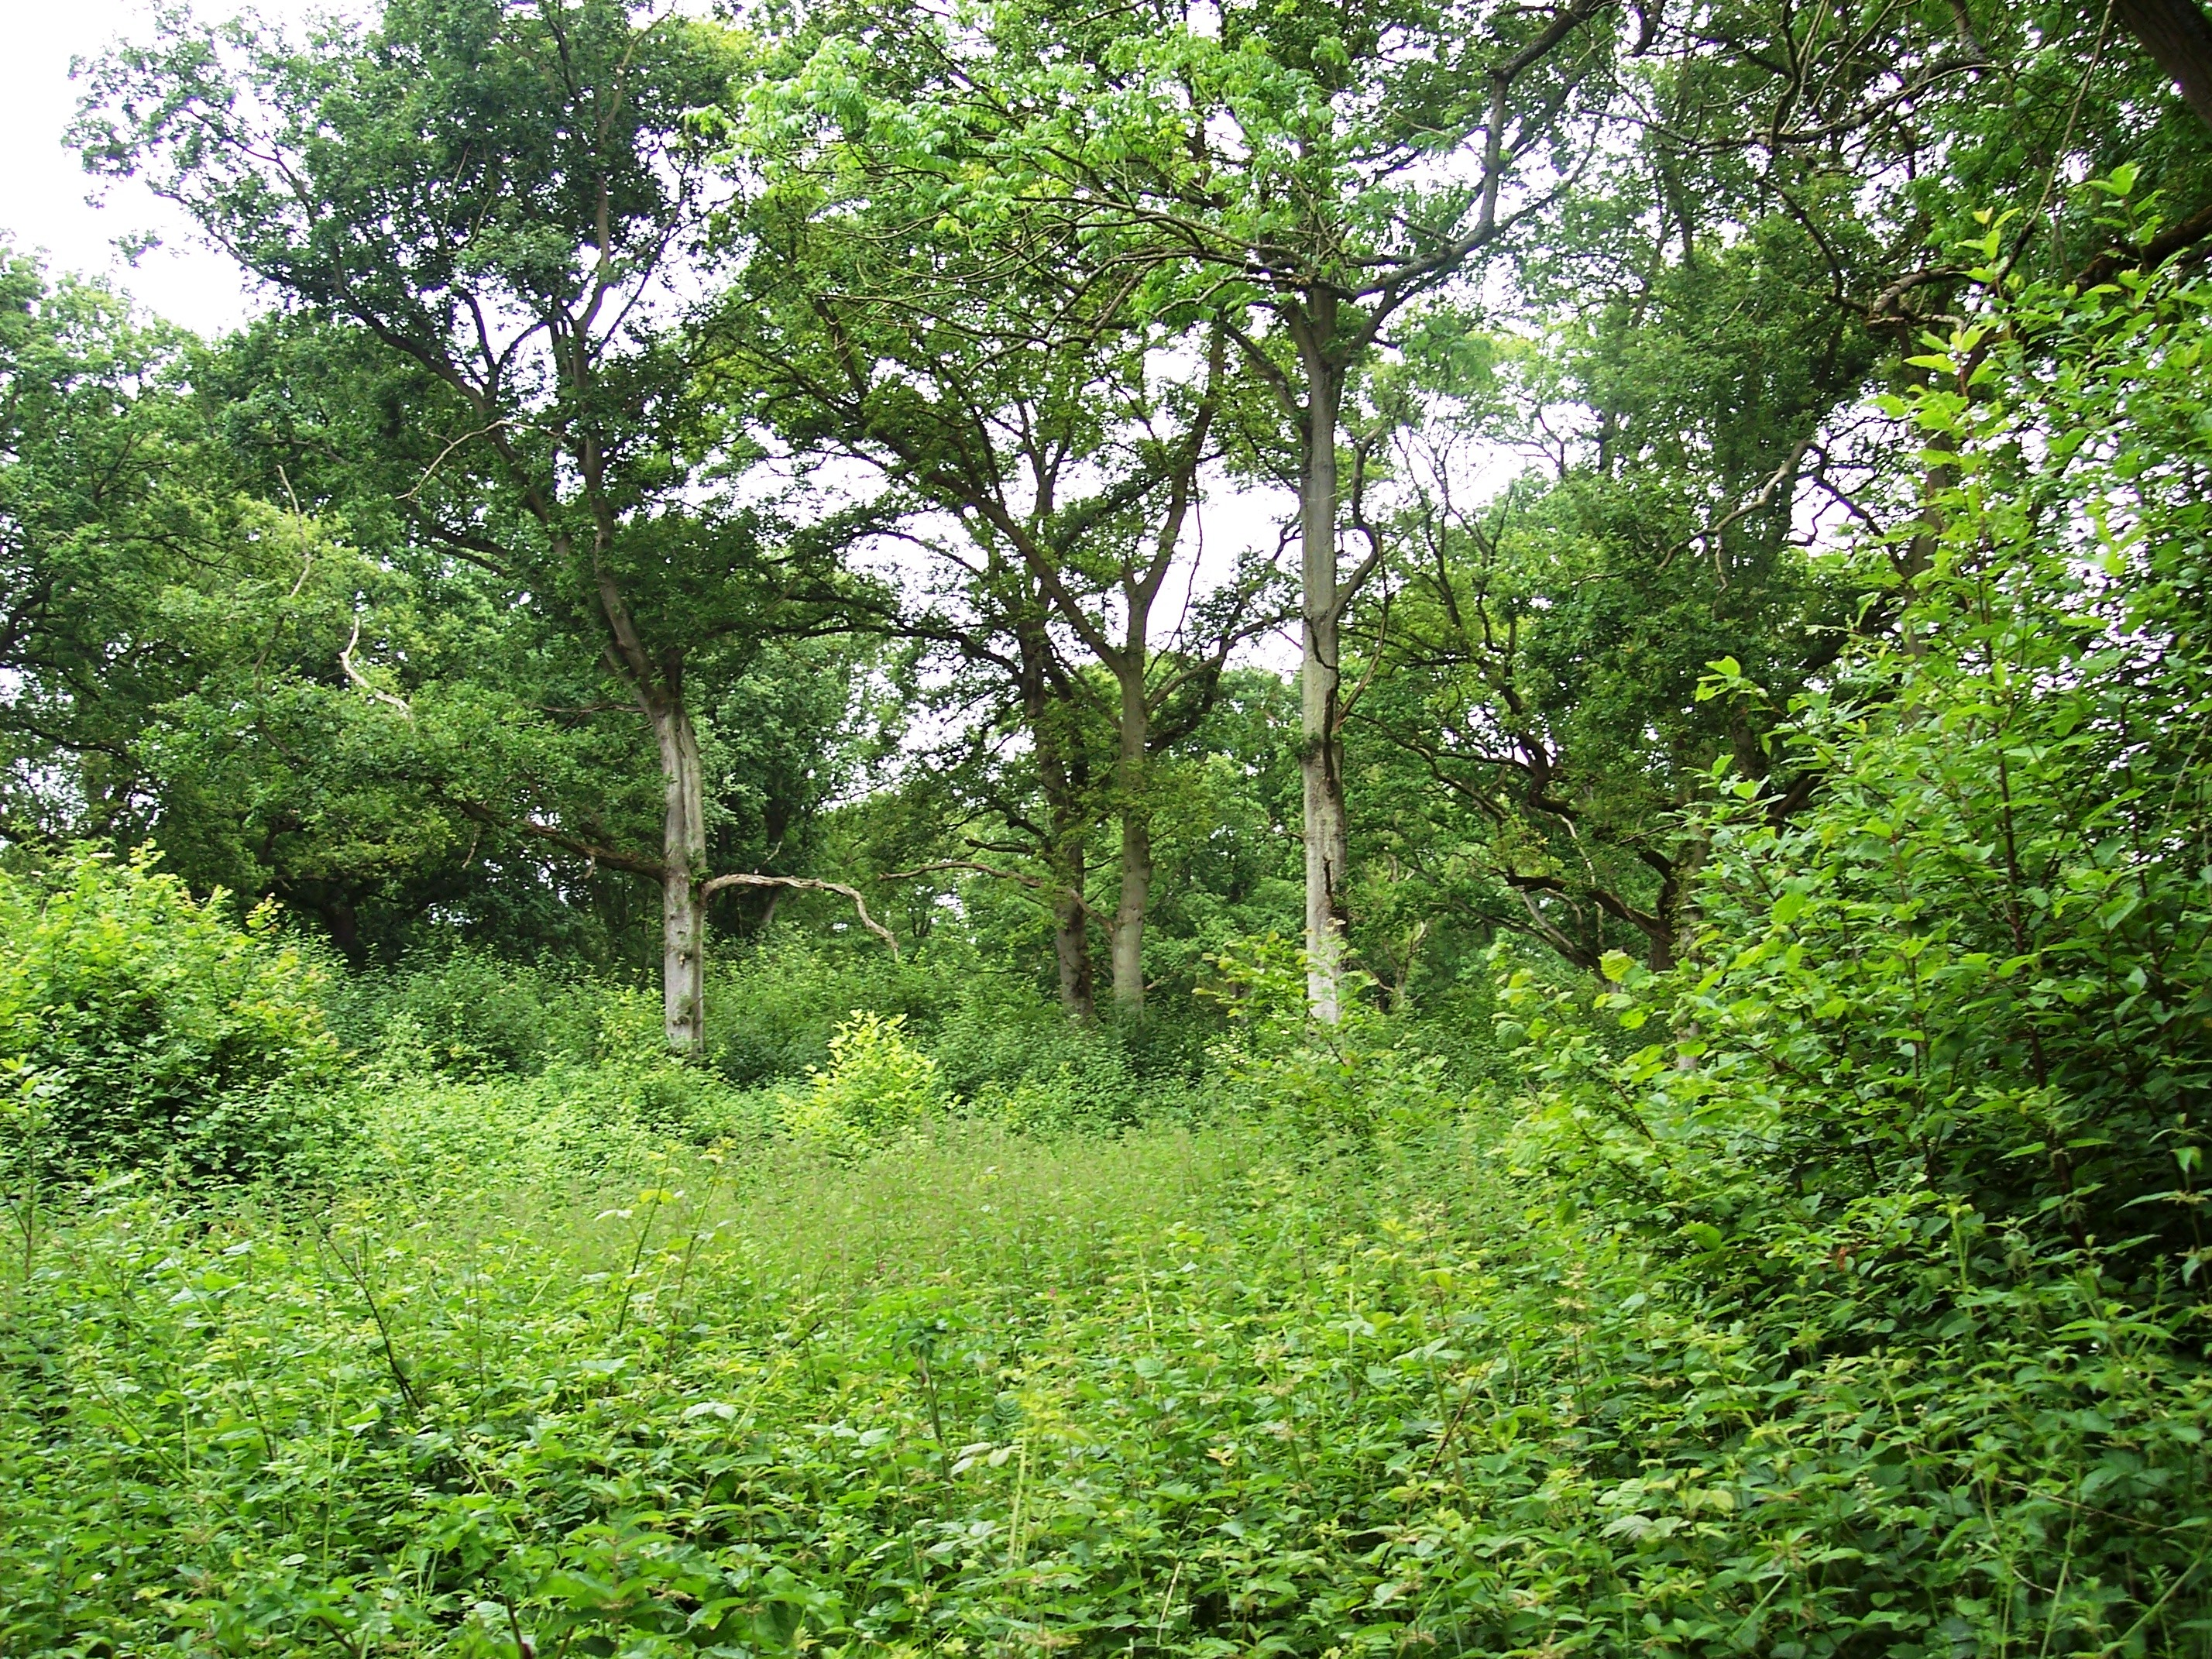 Wayland wood lies to the south-east of Watton, on the Merton estate, and consists chiefly of ancient oaks with a thick undergrowth of hazel. The Wood is thought to be the setting for the Babes in the Wood saga.